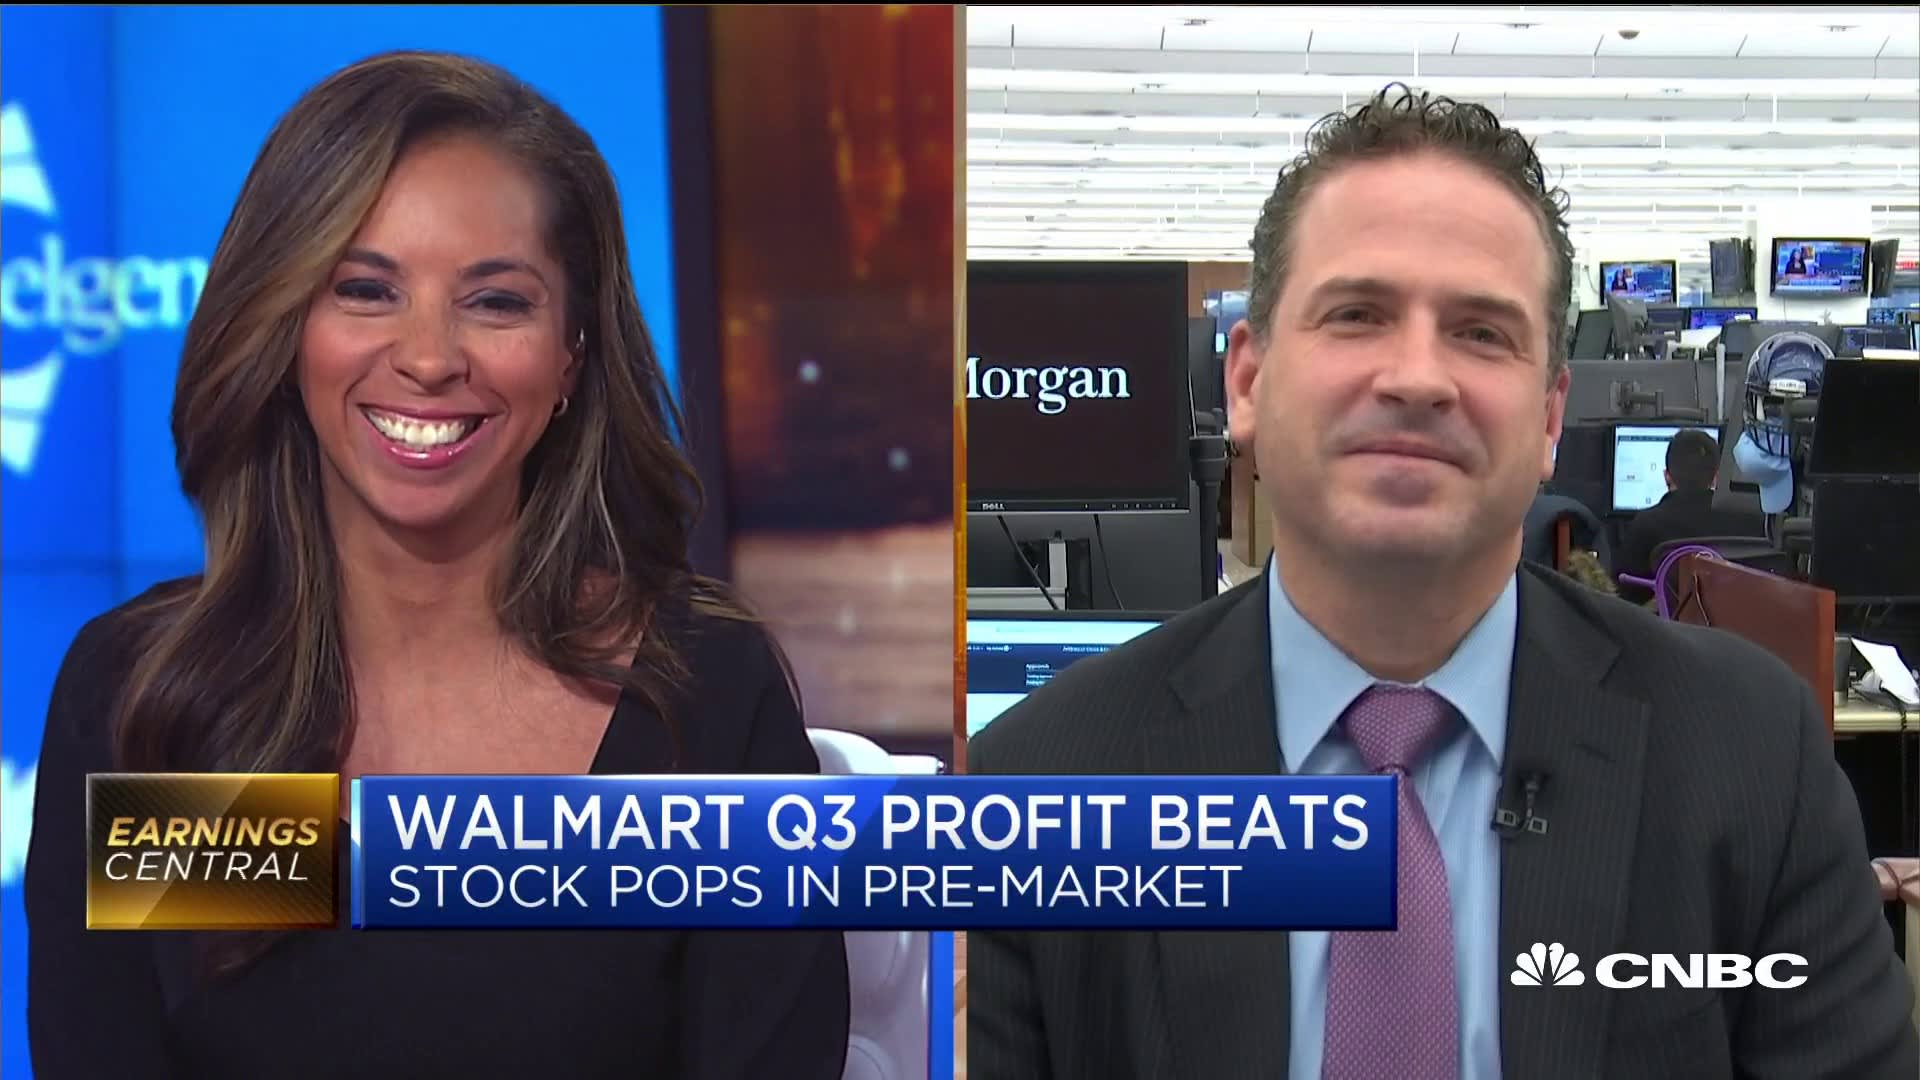 Walmart raising guidance suggests the consumer is strong, analyst says